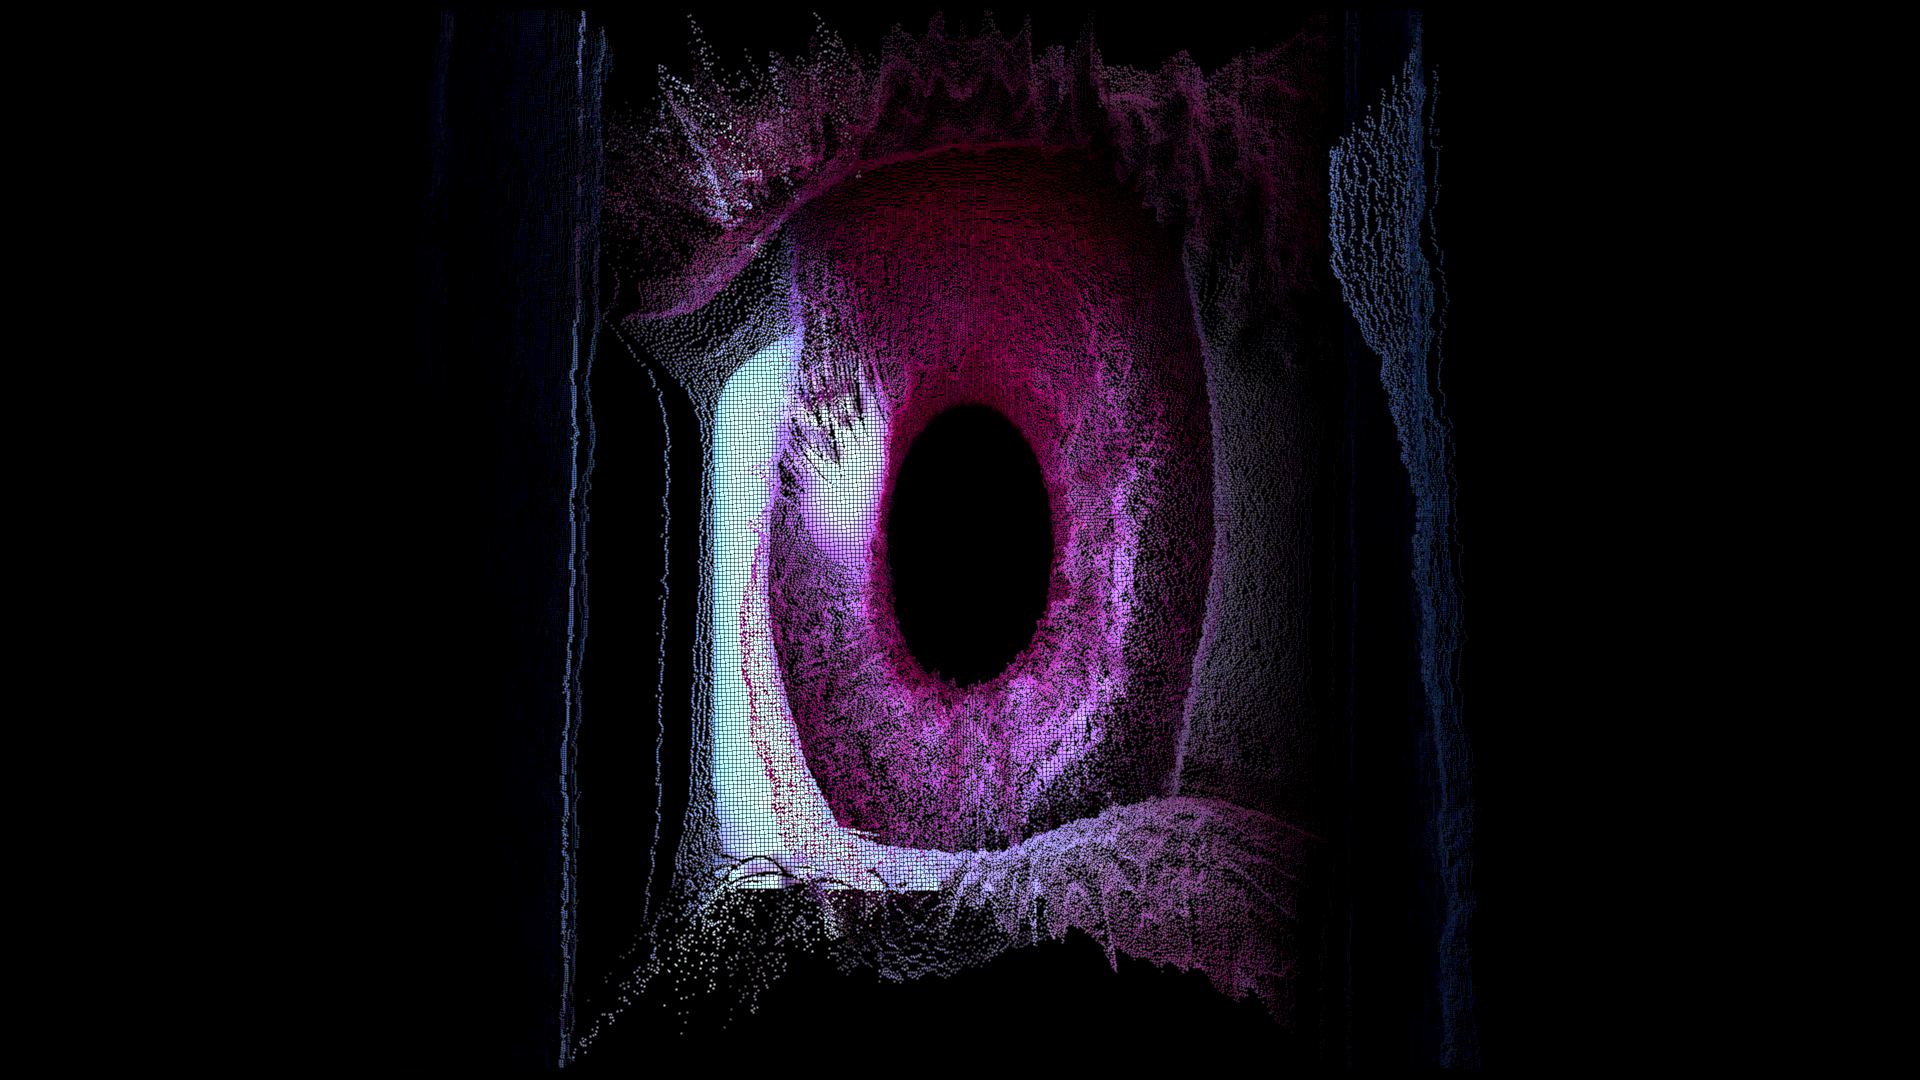 The image contains a large eyeball with a pinkish cornea set against a black background.